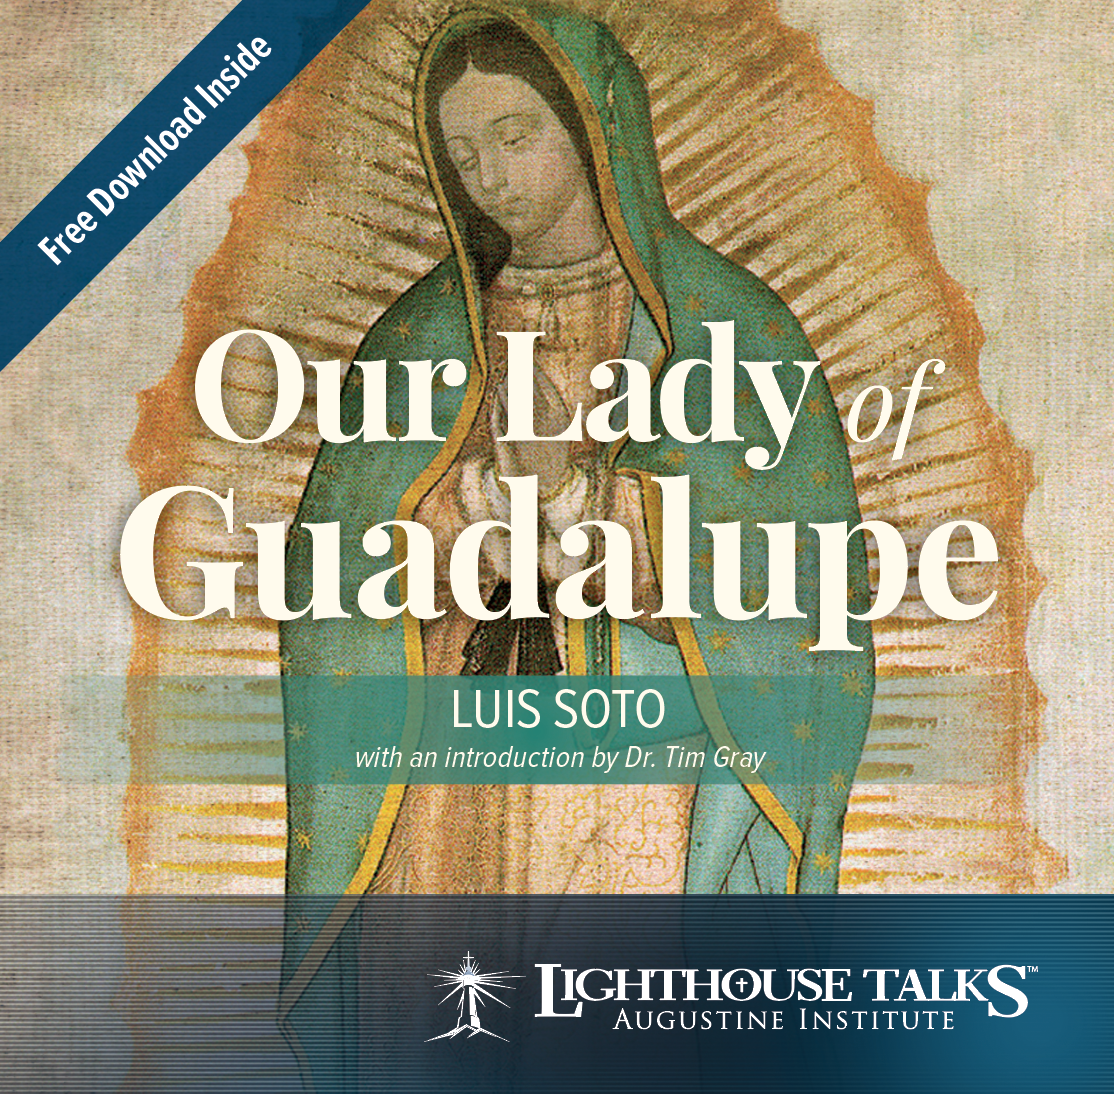 Our Lady of Guadalupe - Luis Soto